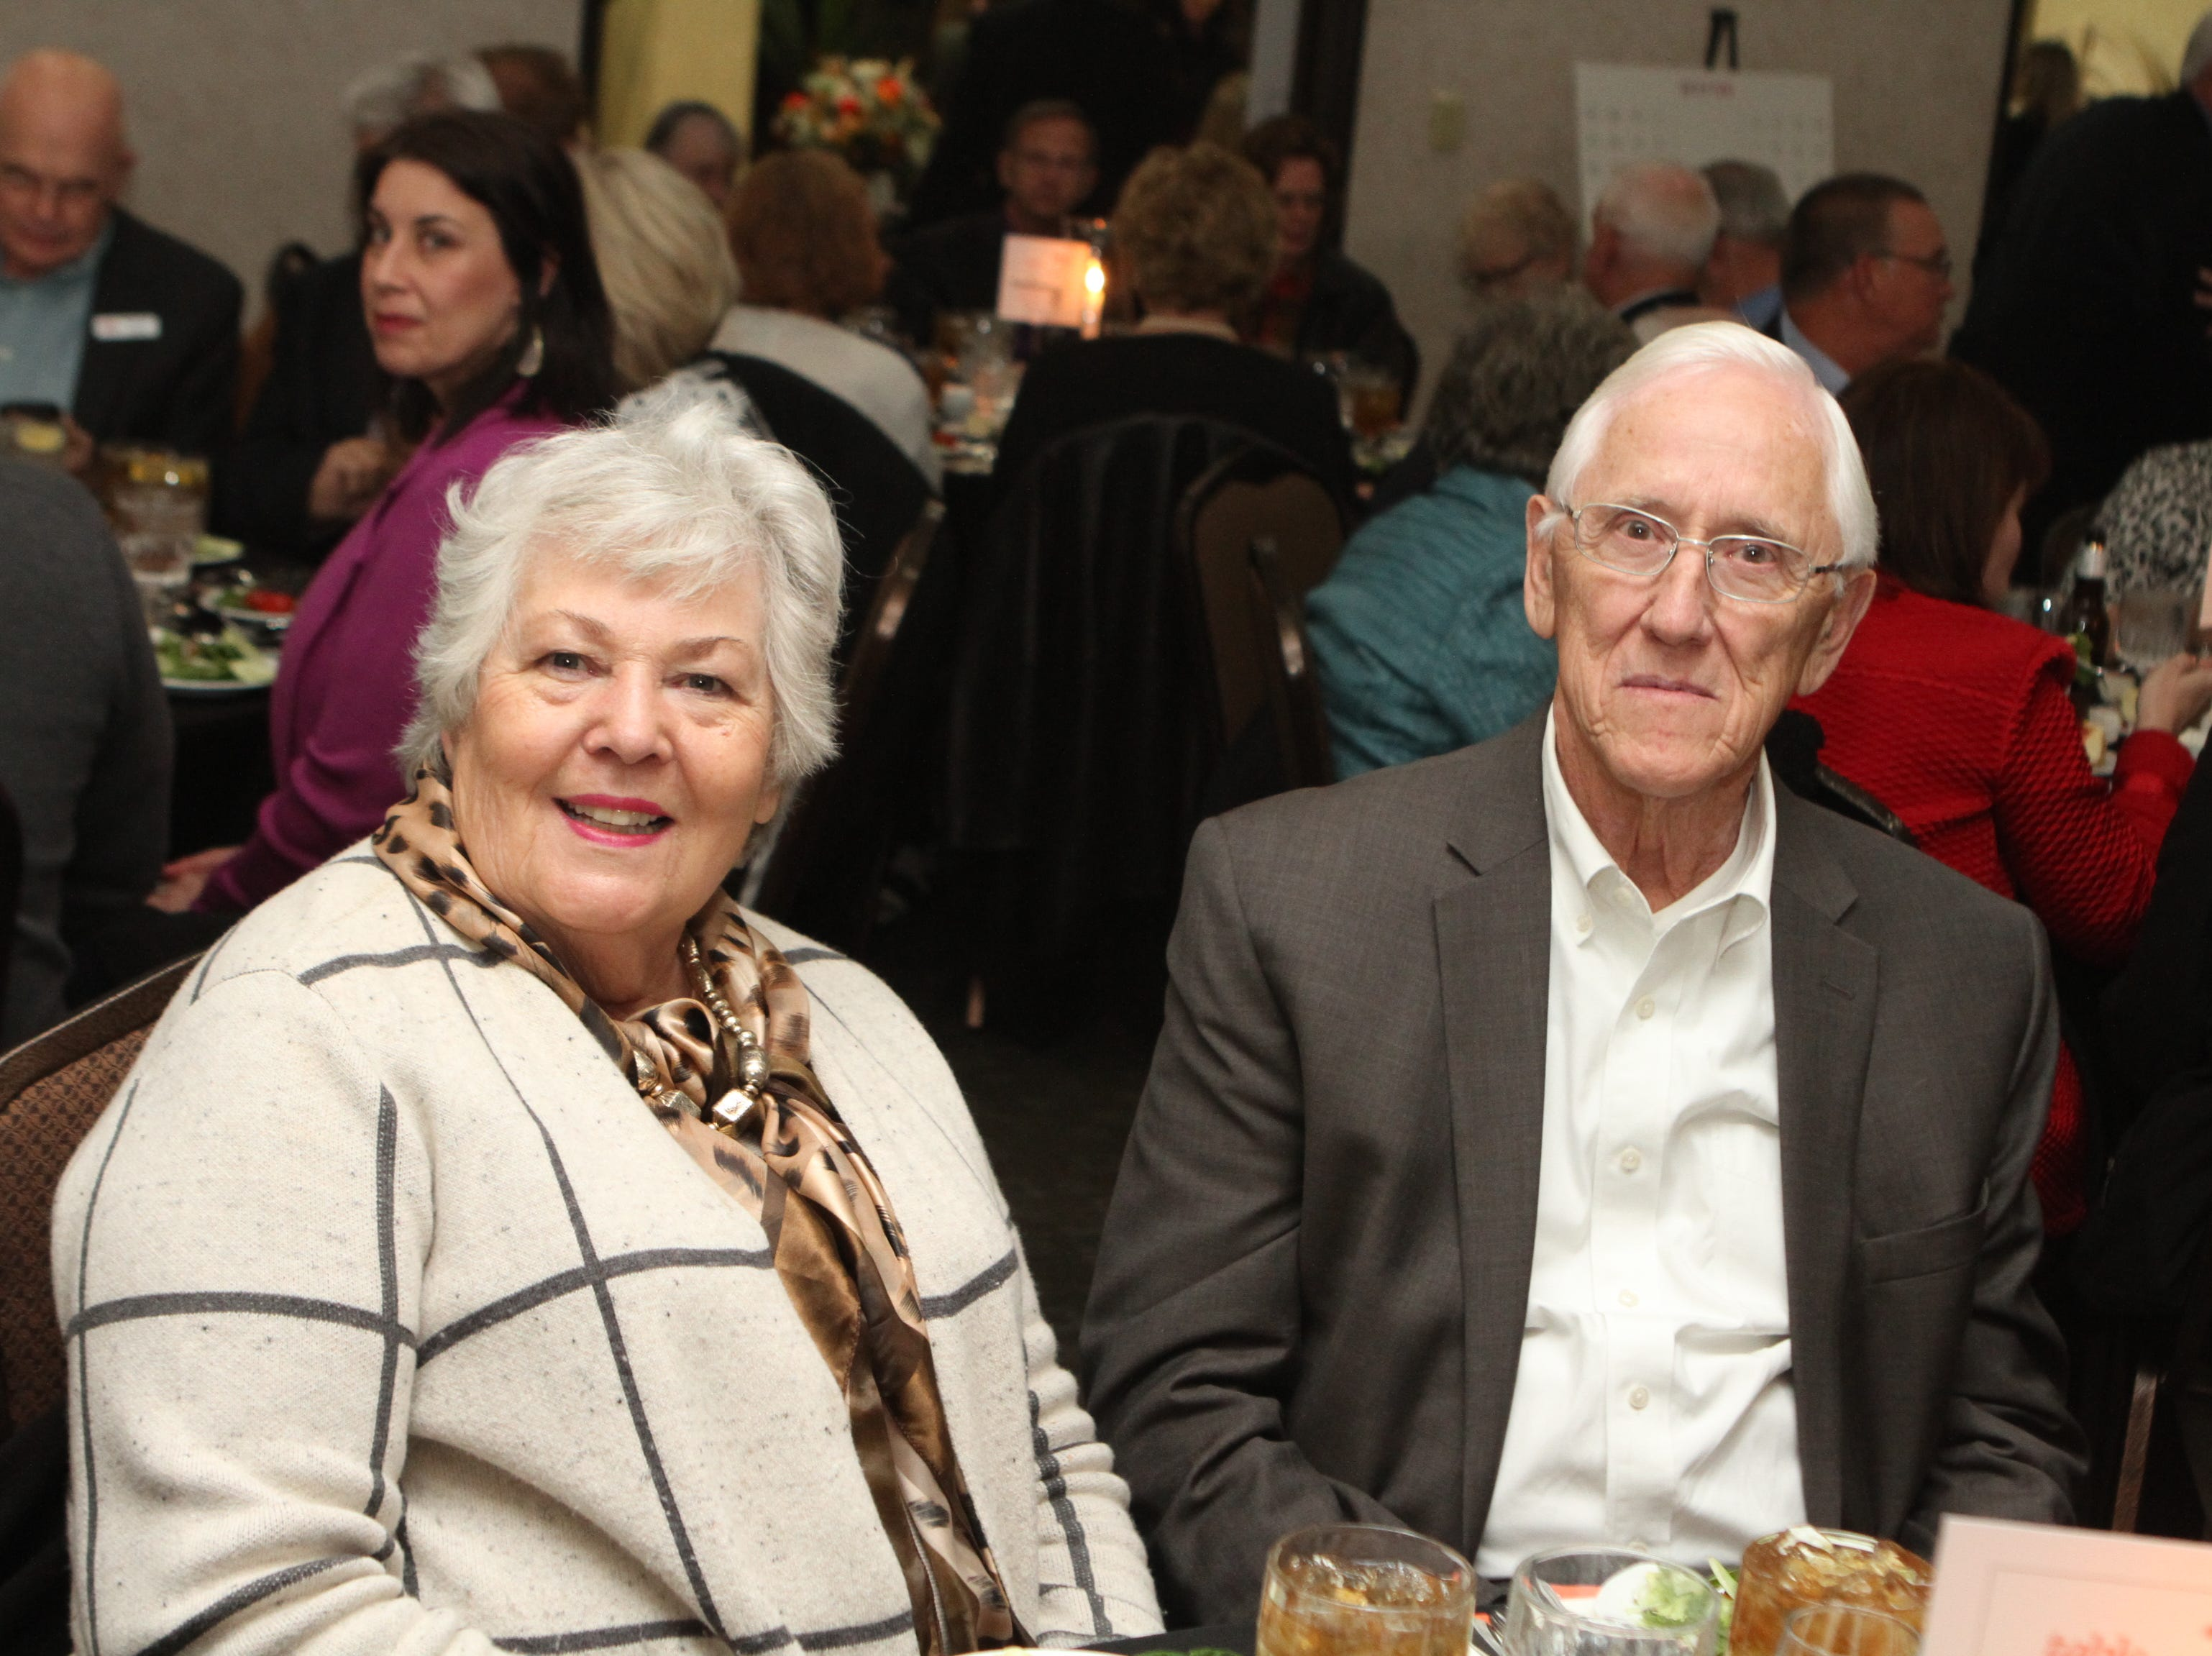 About 300 supporters came out for dinner, theater and information about the status of a new building project at the Loaves and Fishes Capital Campaign Kickoff on Saturday, Nov. 10, 2018.